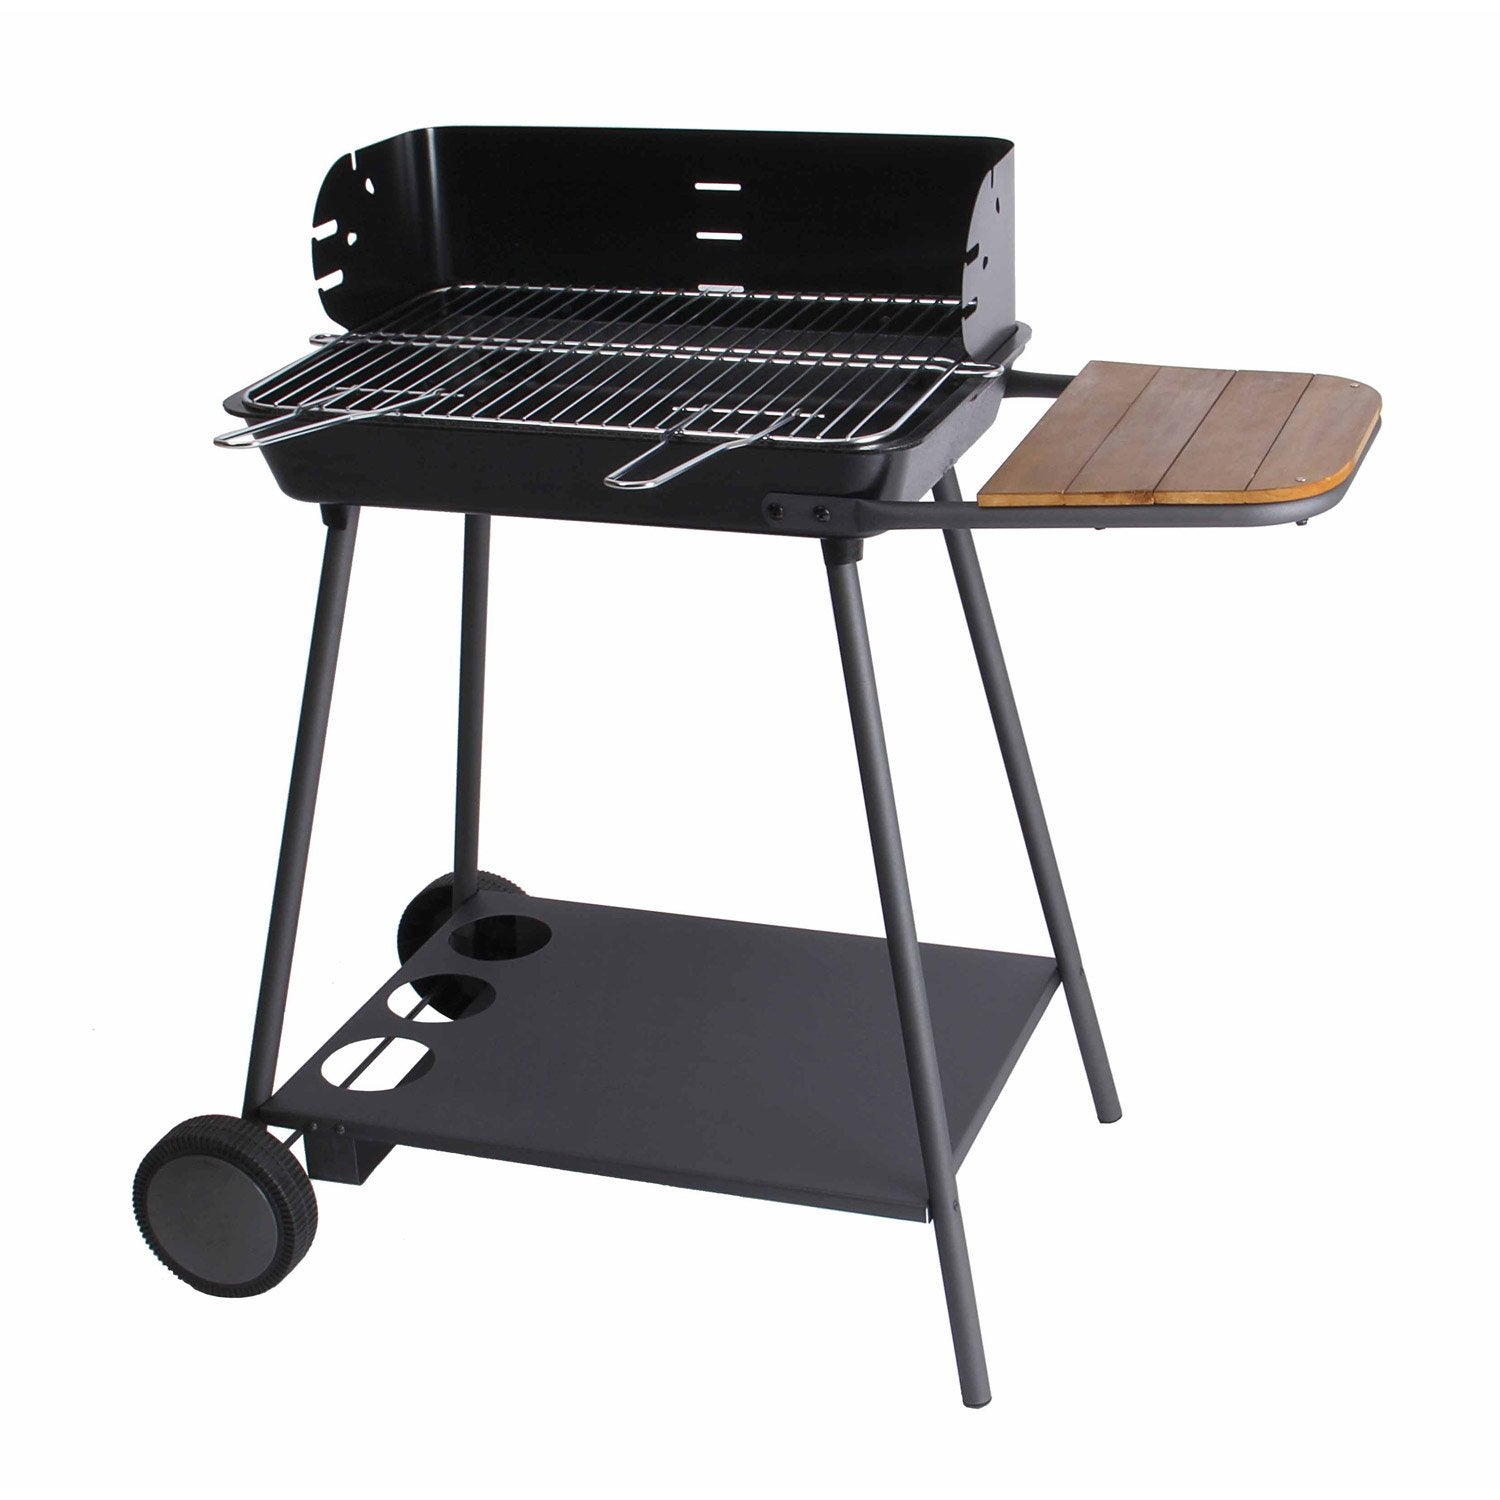 Barbecue au charbon de bois ibiza leroy merlin - Barbecue de table charbon ...